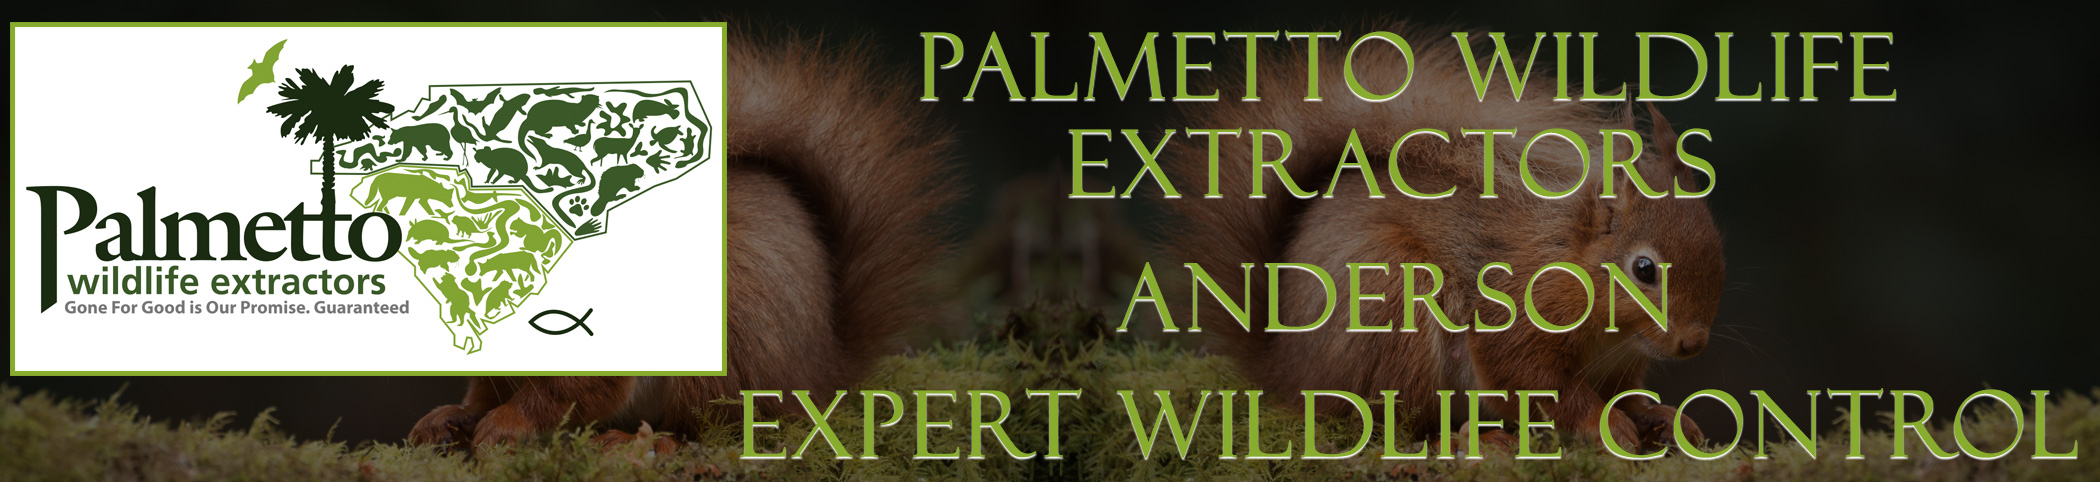 Palmetto Wildlife Extractors anderson south carolina header image